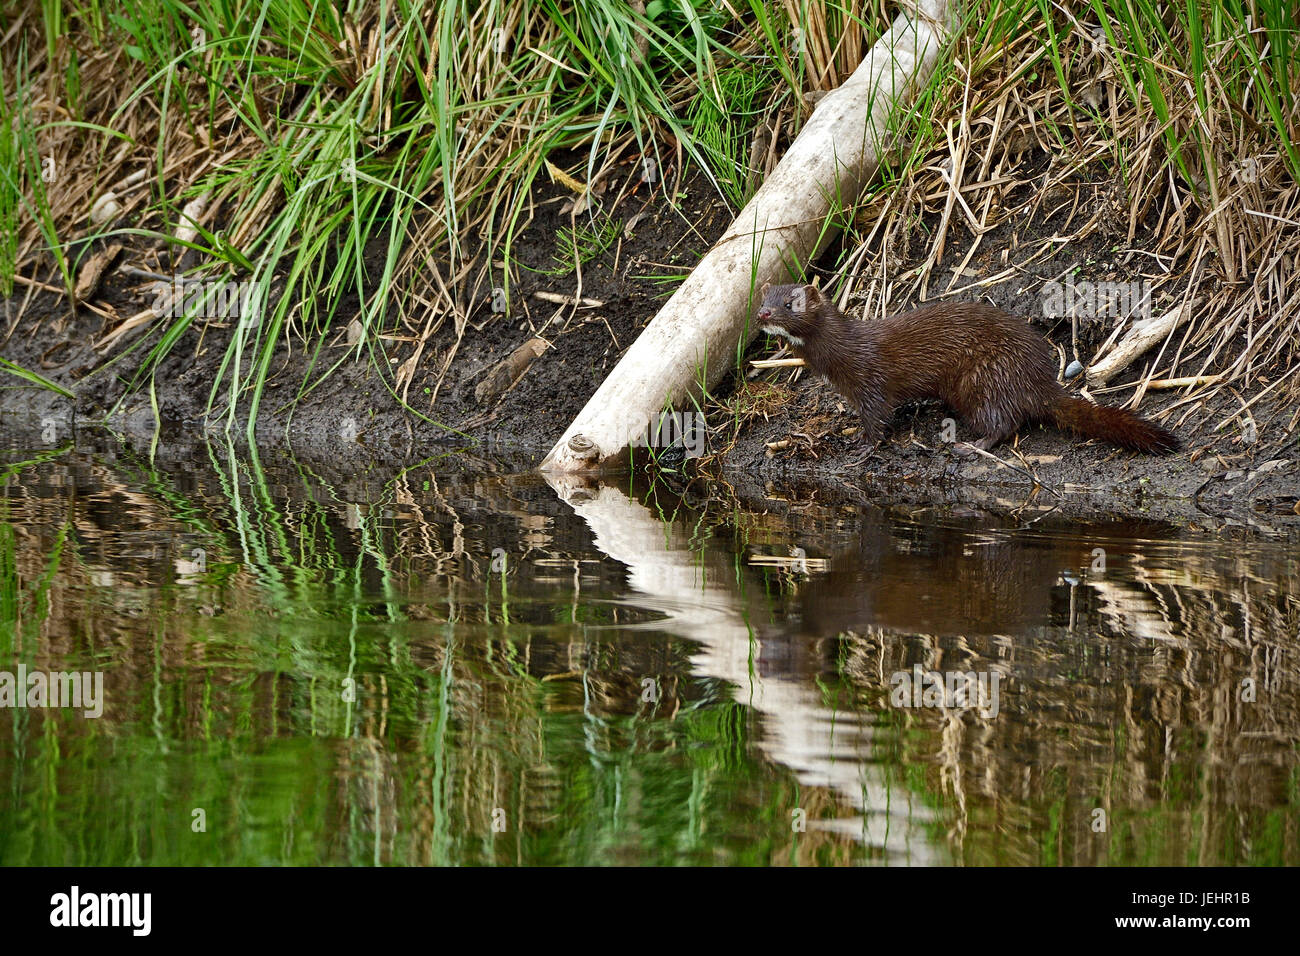 A wild mink (Mustela vison) pausing for a second along a river bank in rural Alberta Canada. - Stock Image